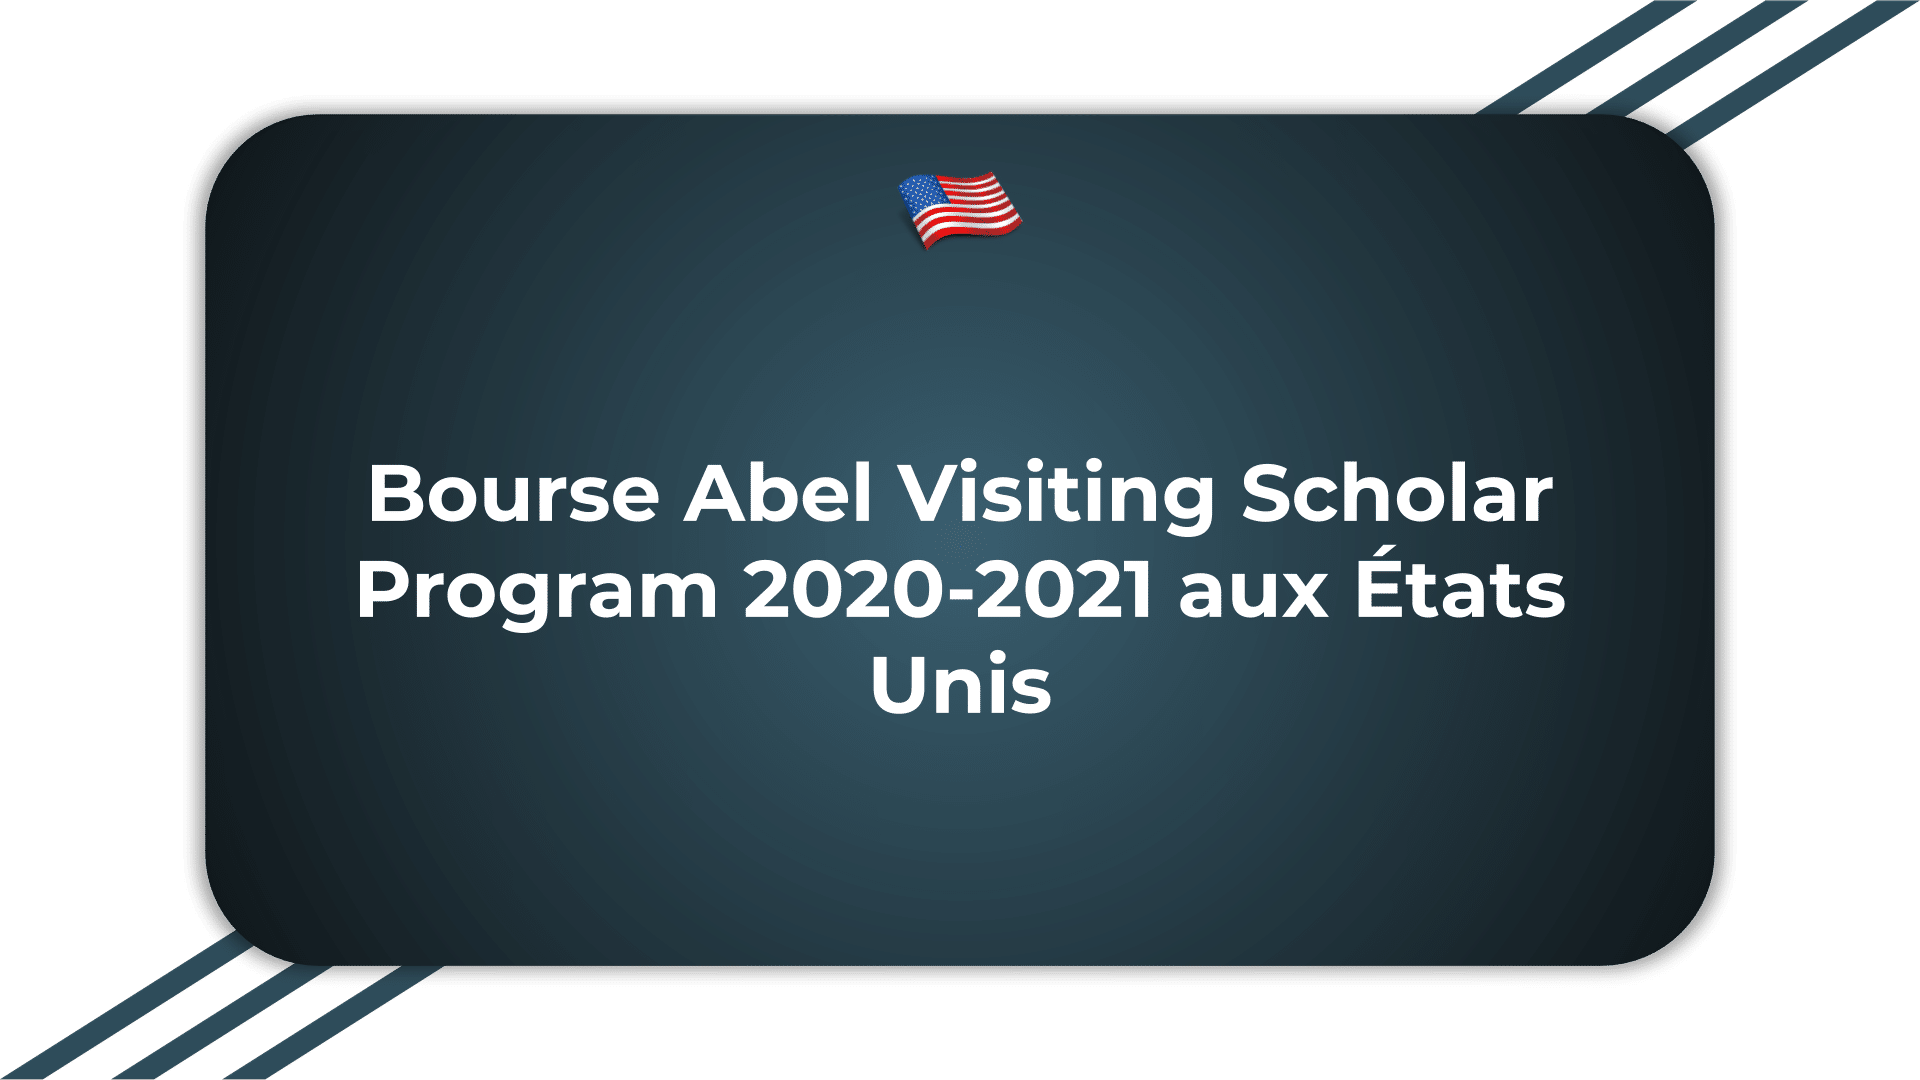 Bourse Abel Visiting Scholar Program